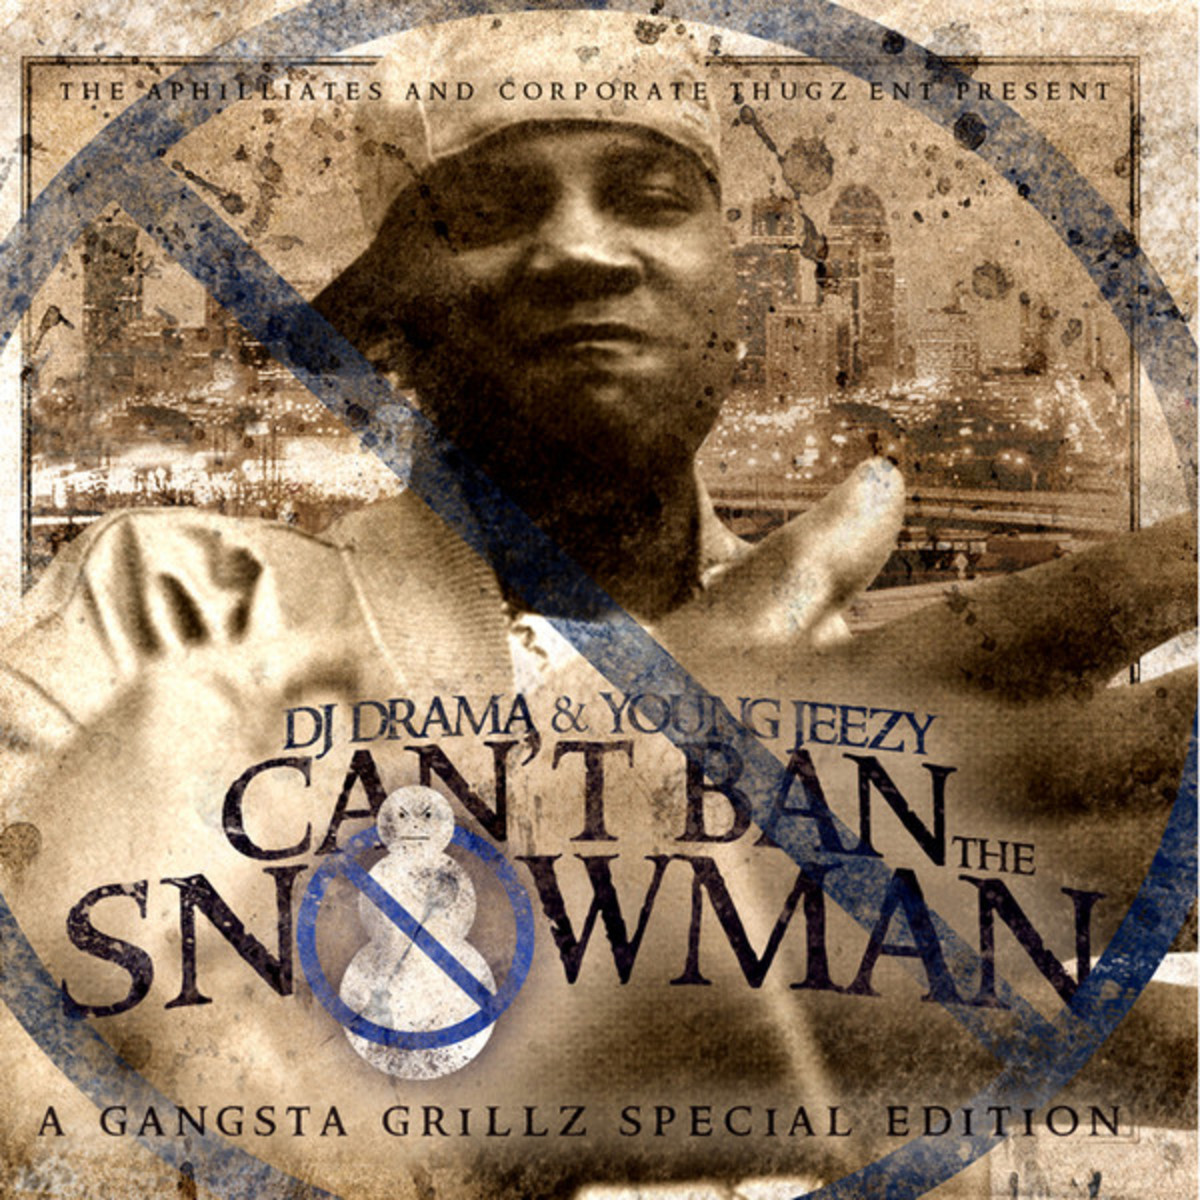 jeezy-cant-ban-the-snowman-cover